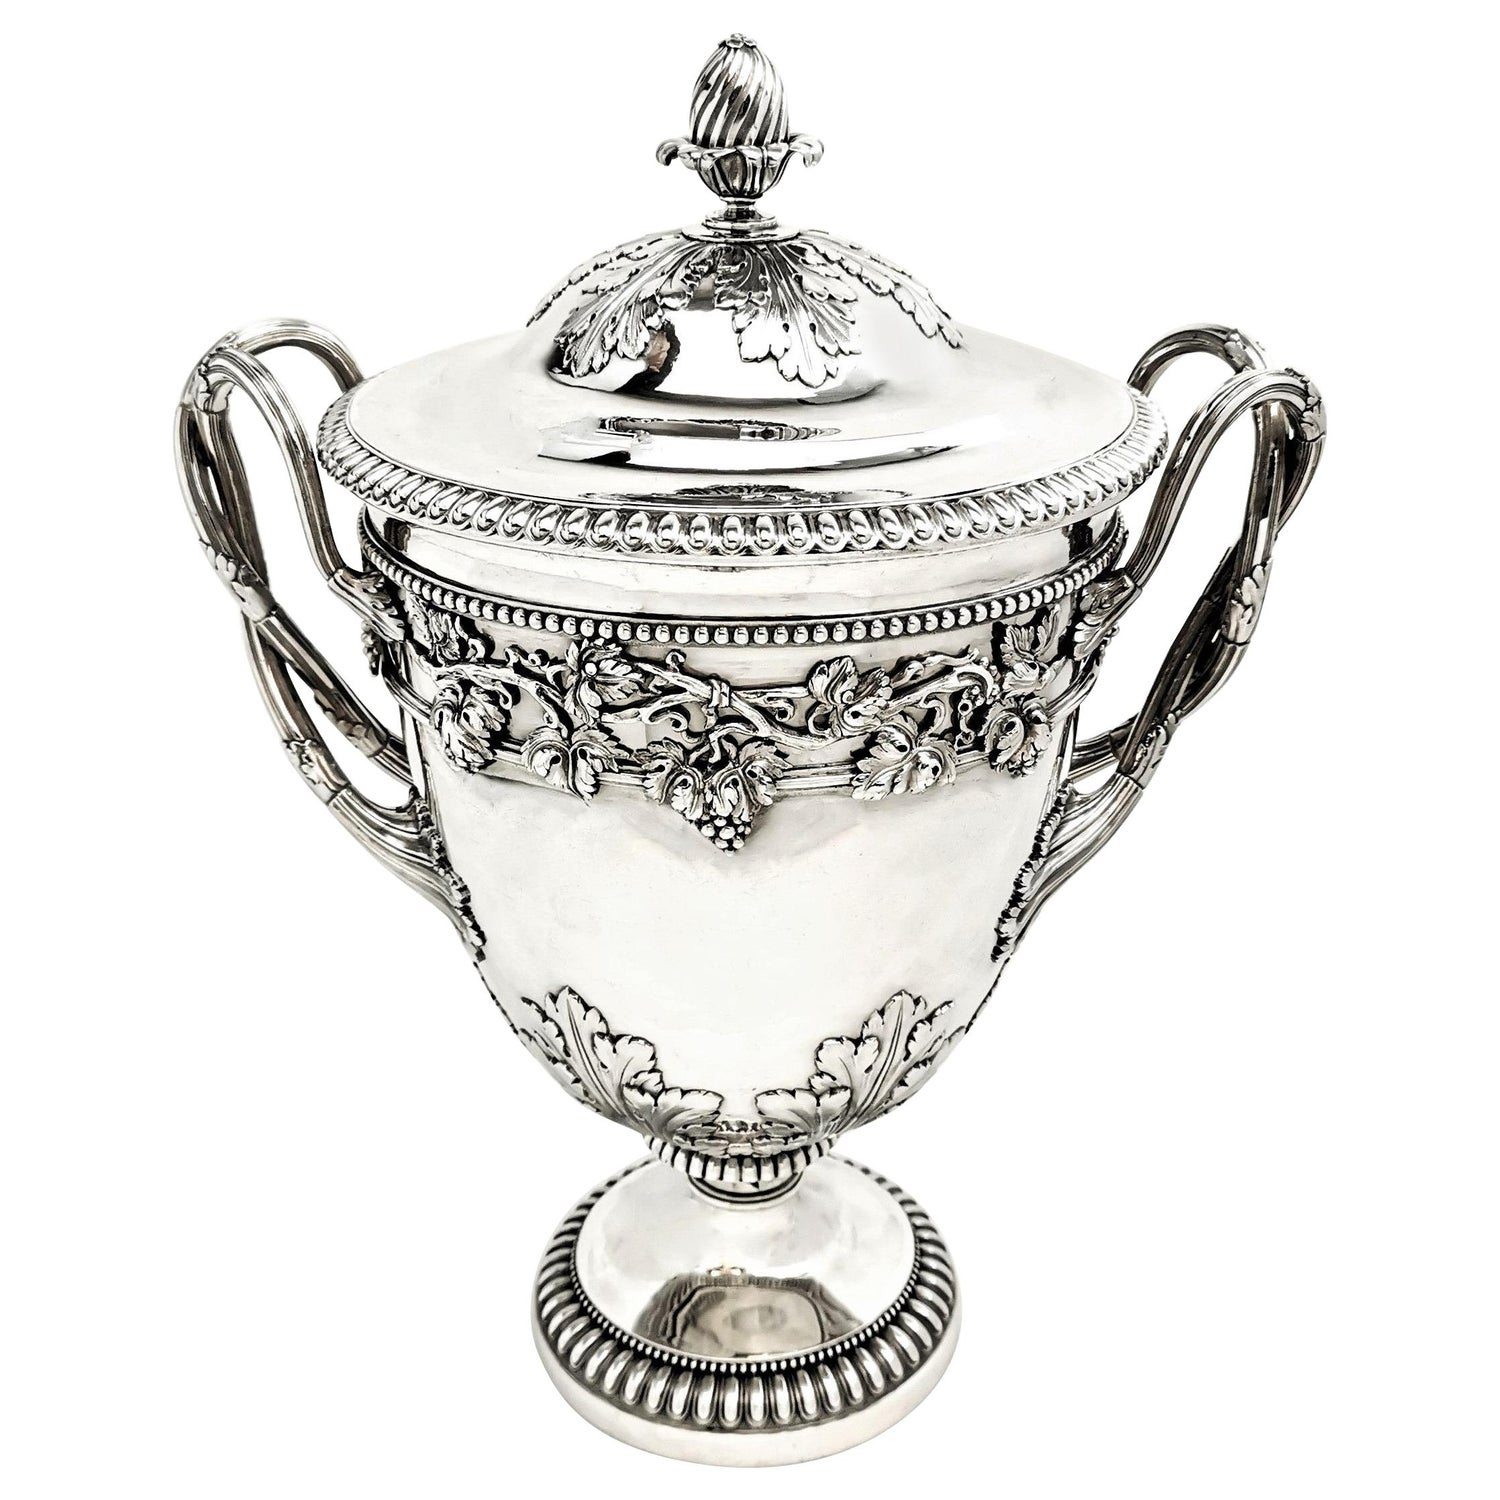 Antique Georgian Sterling Silver Cup & Cover / Lidded Trophy, 1812